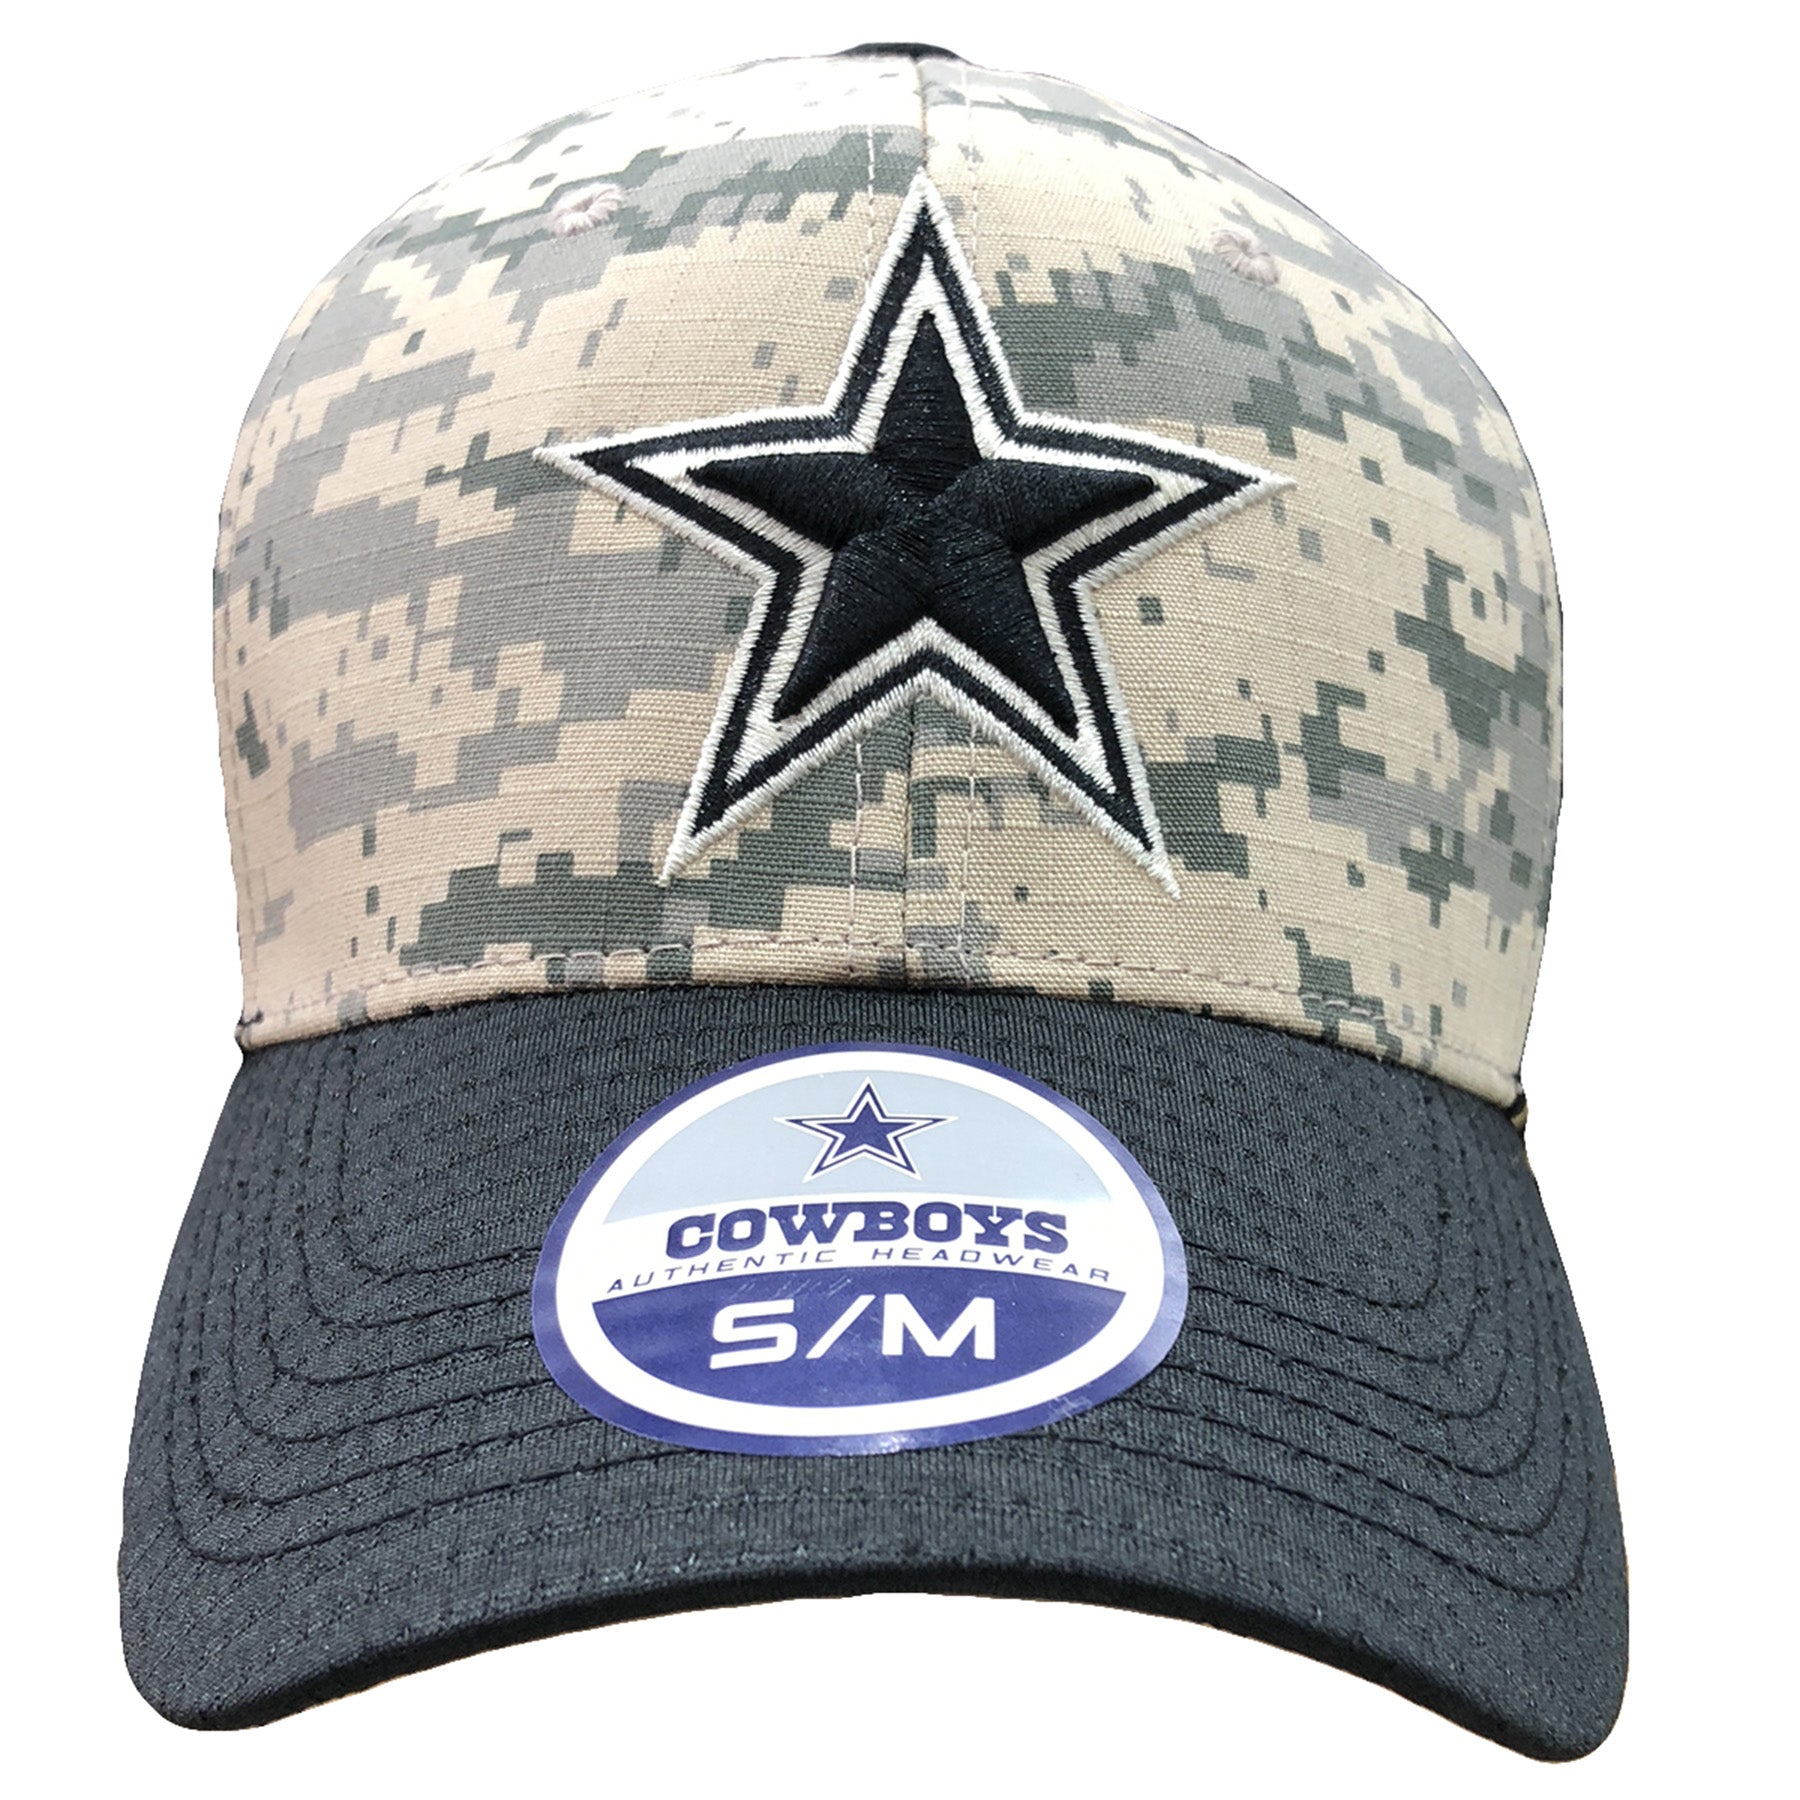 Embroidered on the front of the Dallas Cowboys digital camouflage stretch  fit cap is the Dallas bff17a77c